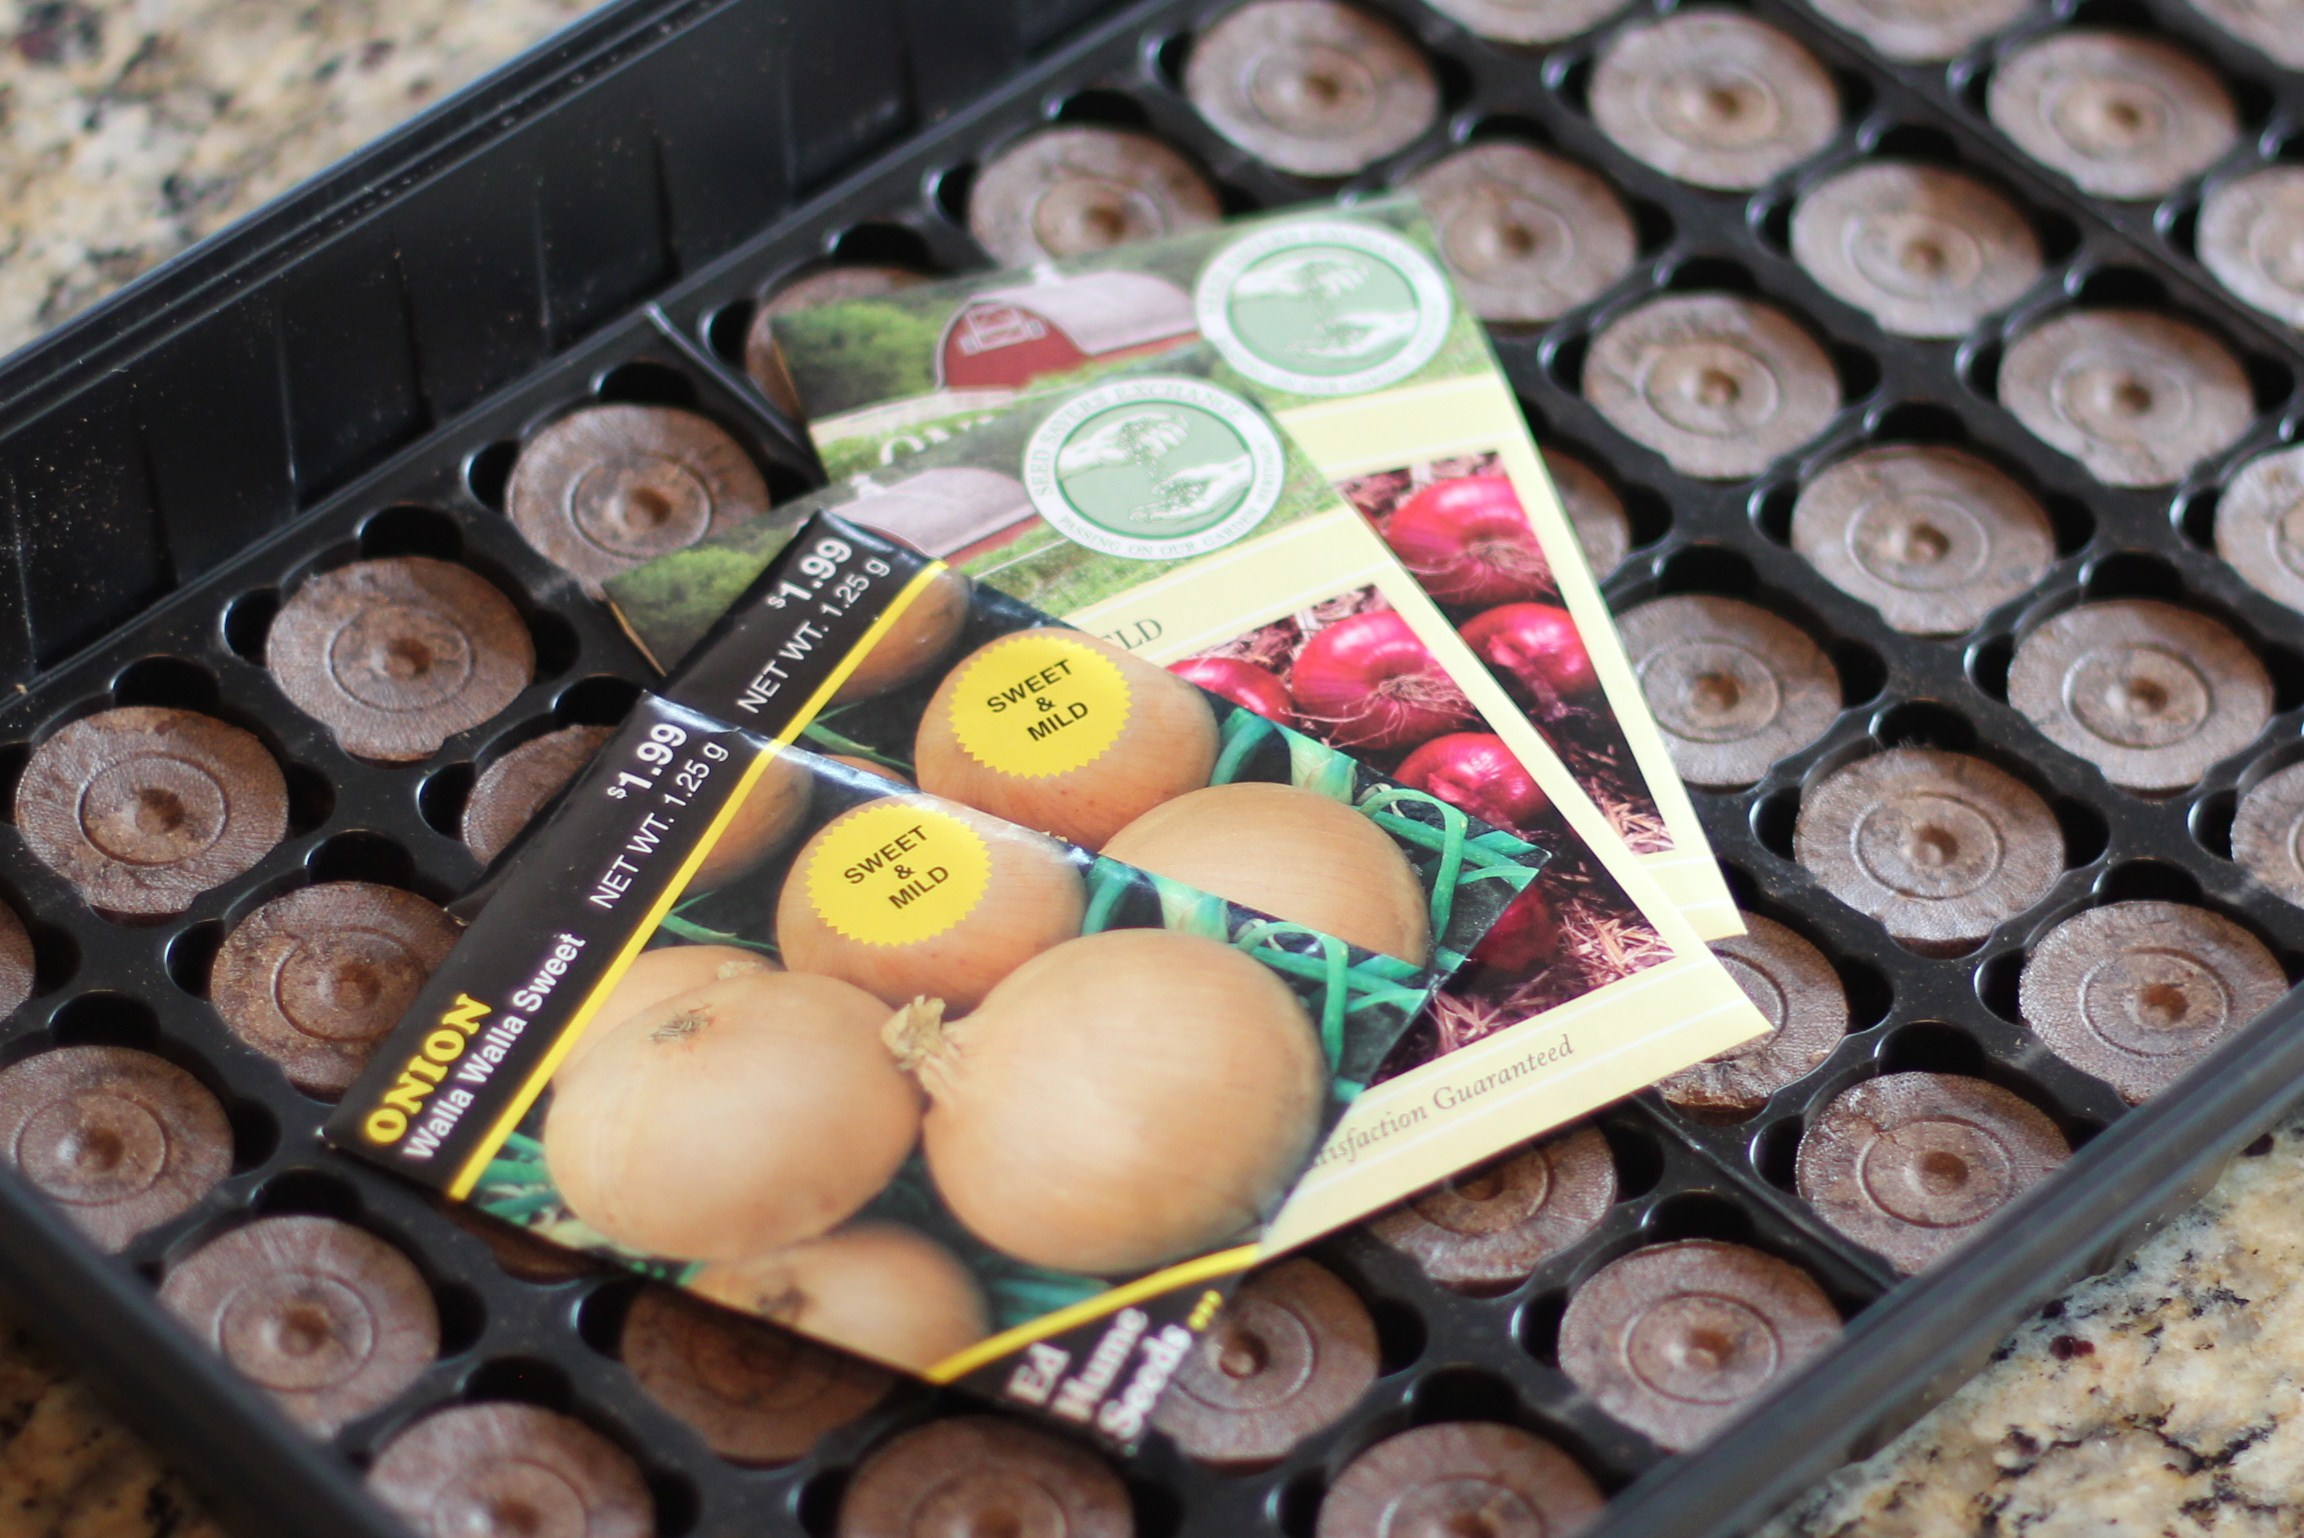 How To Grow Your Own Food: I Planted Onion Seeds Today!